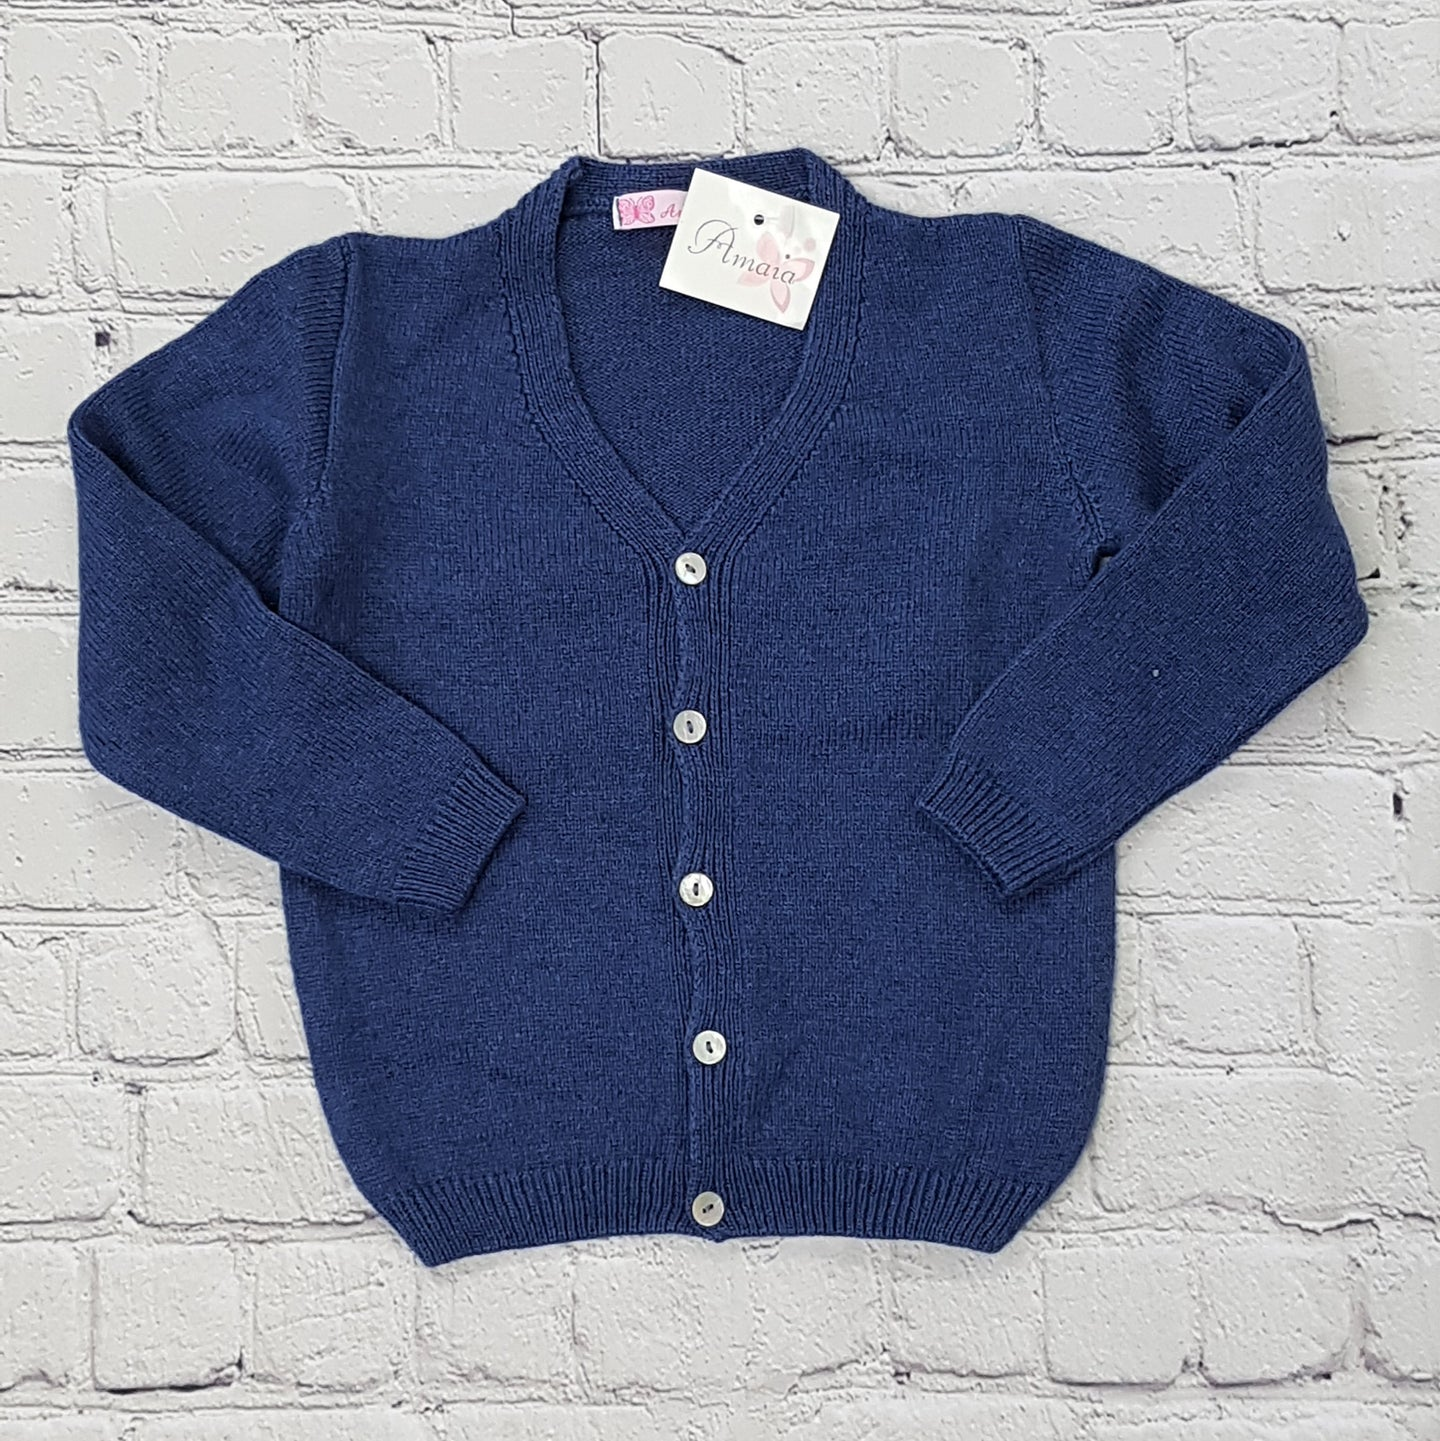 AMAIA outlet cardigan 6m and 3yo baby boy - FAMILY AFFAIRE